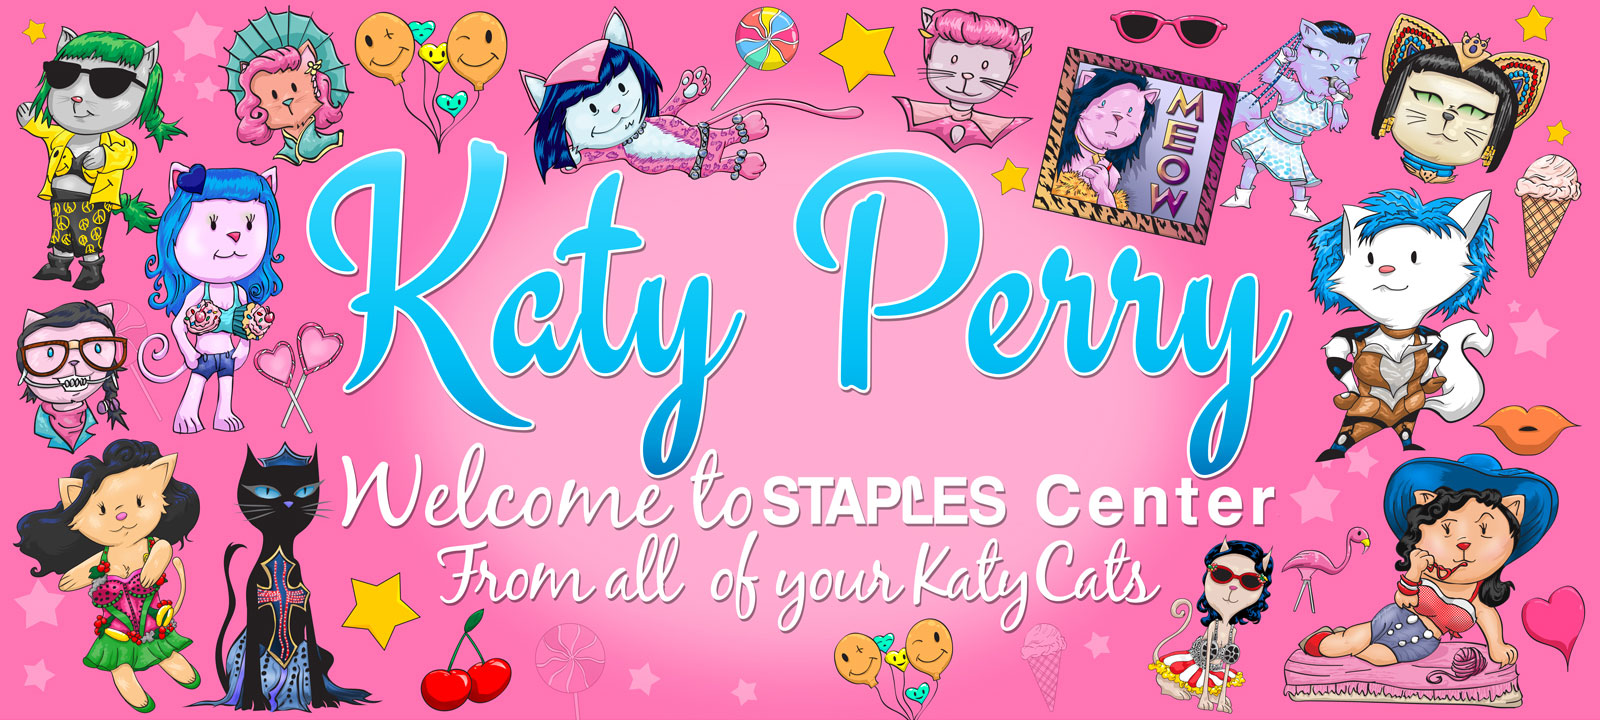 Katy Perry banner design and illustration